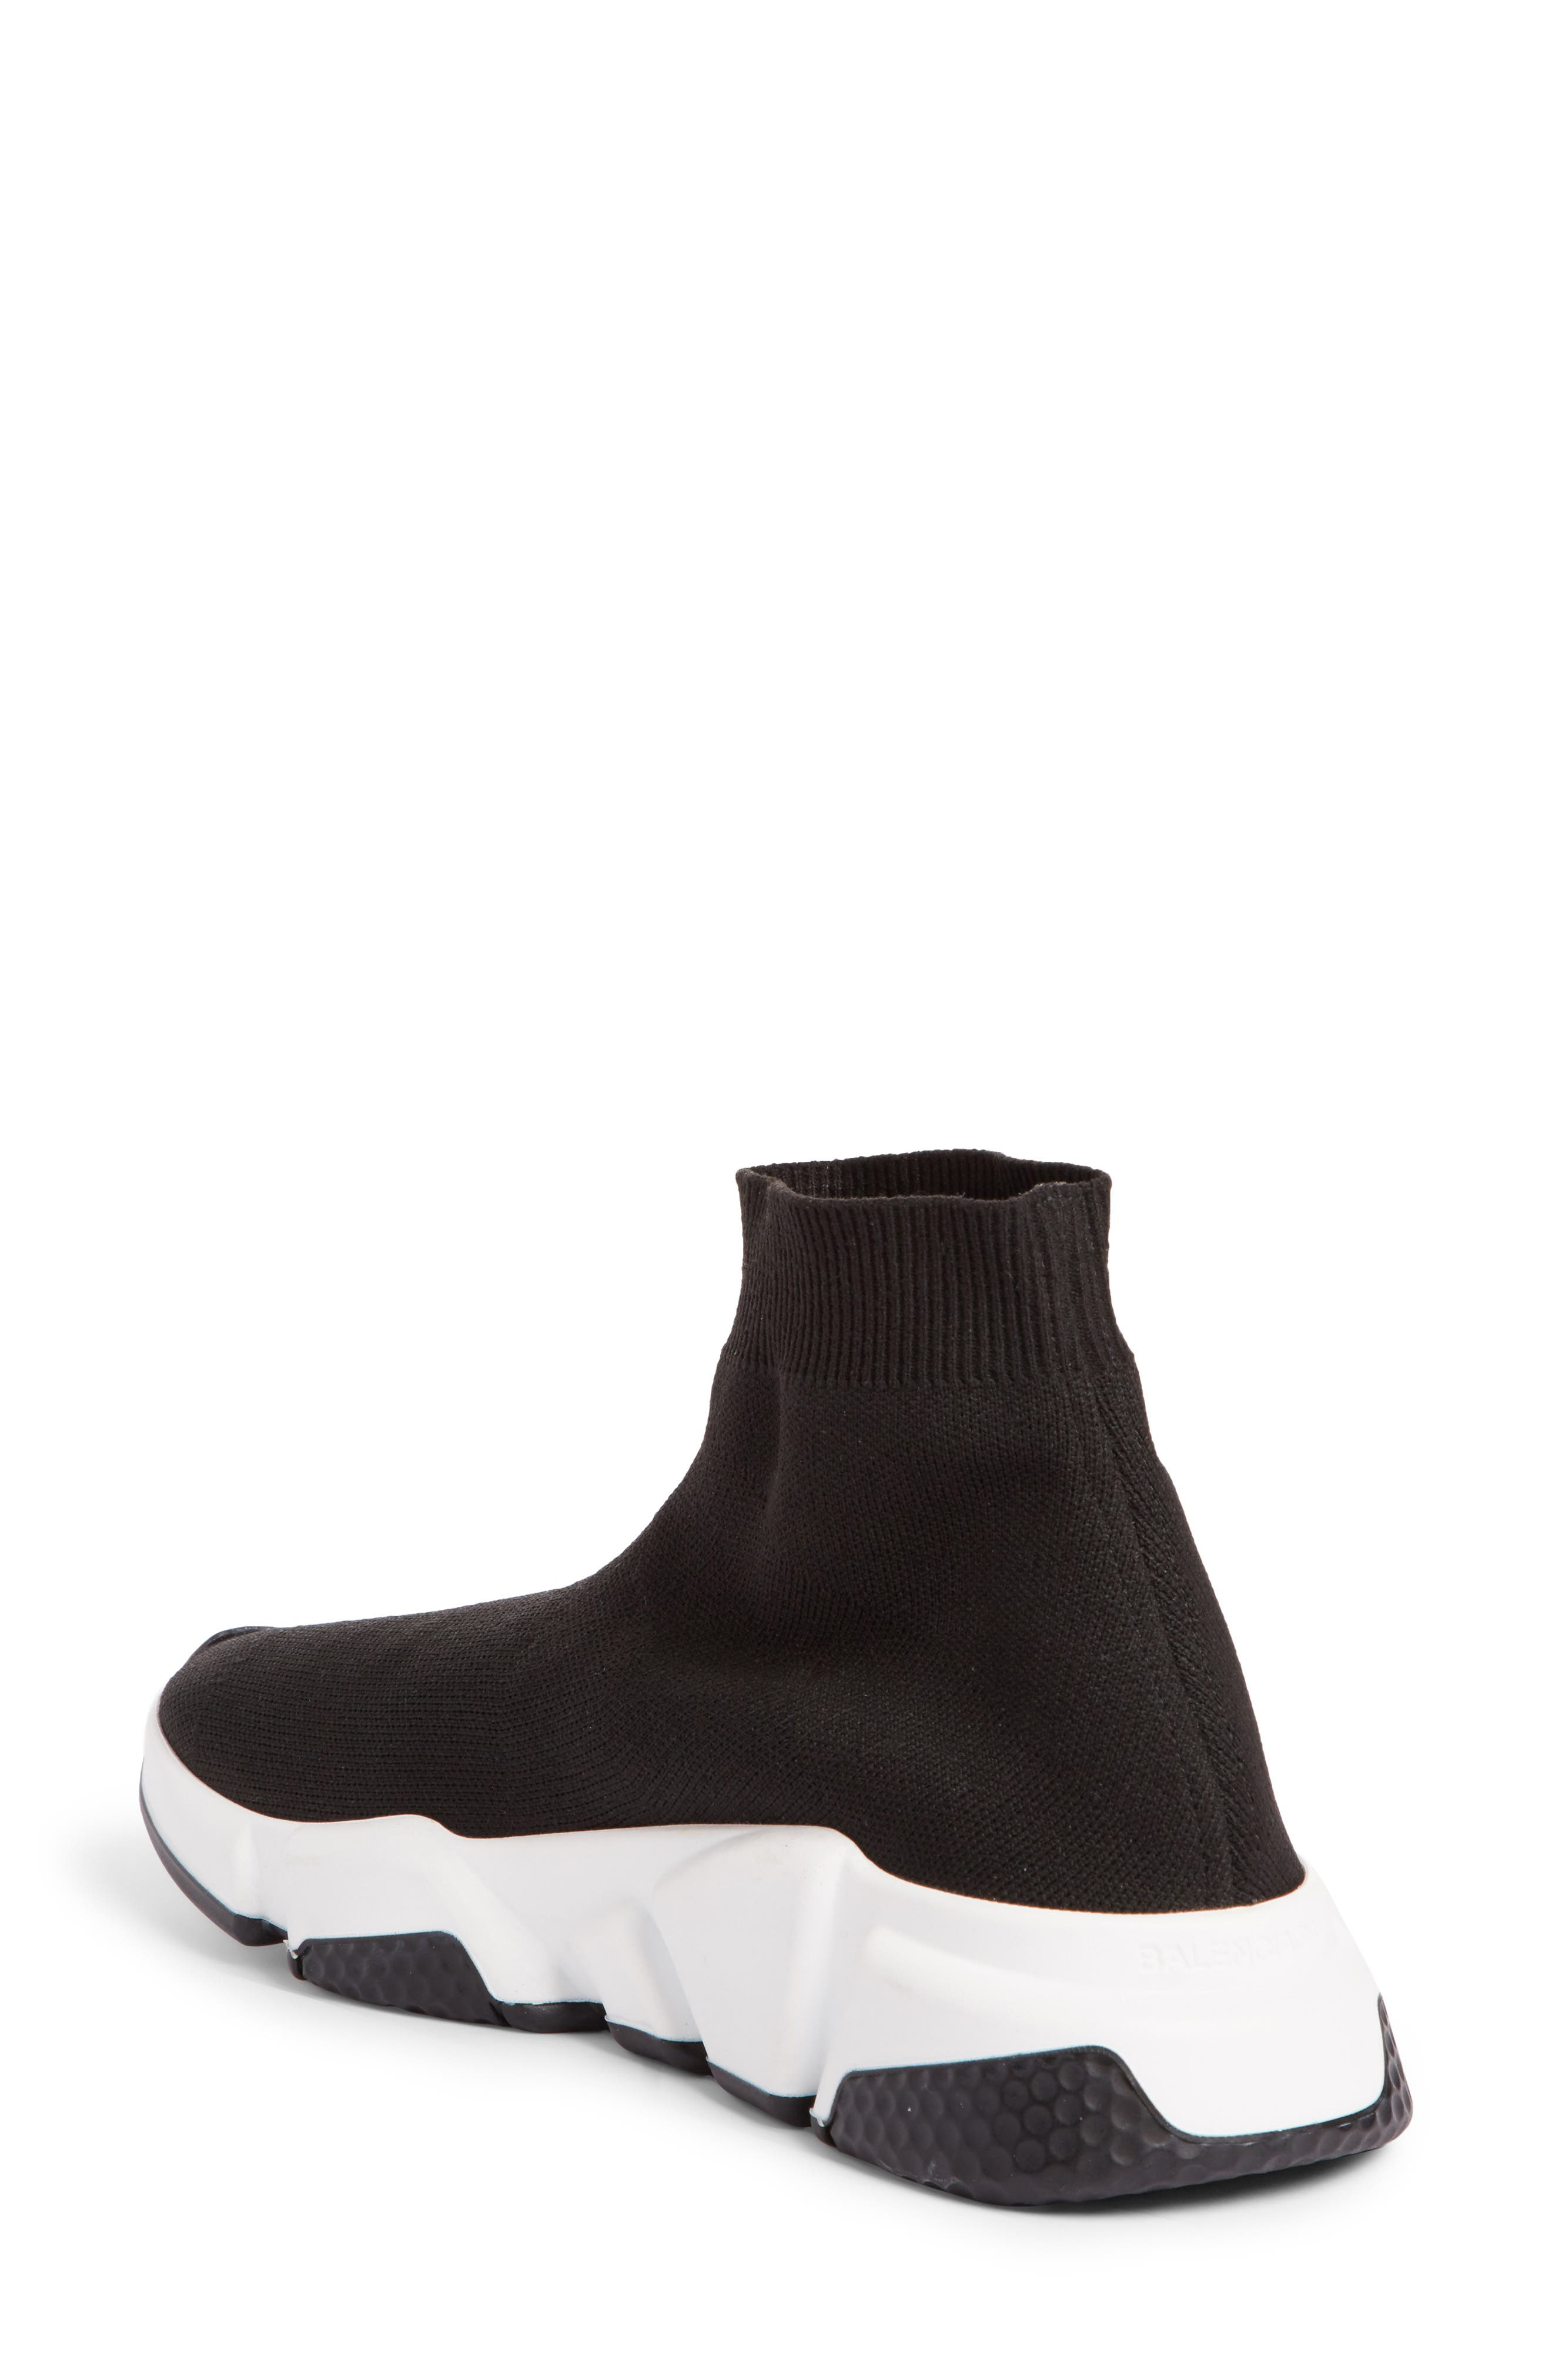 4eb47c305222 Women s Balenciaga Shoes